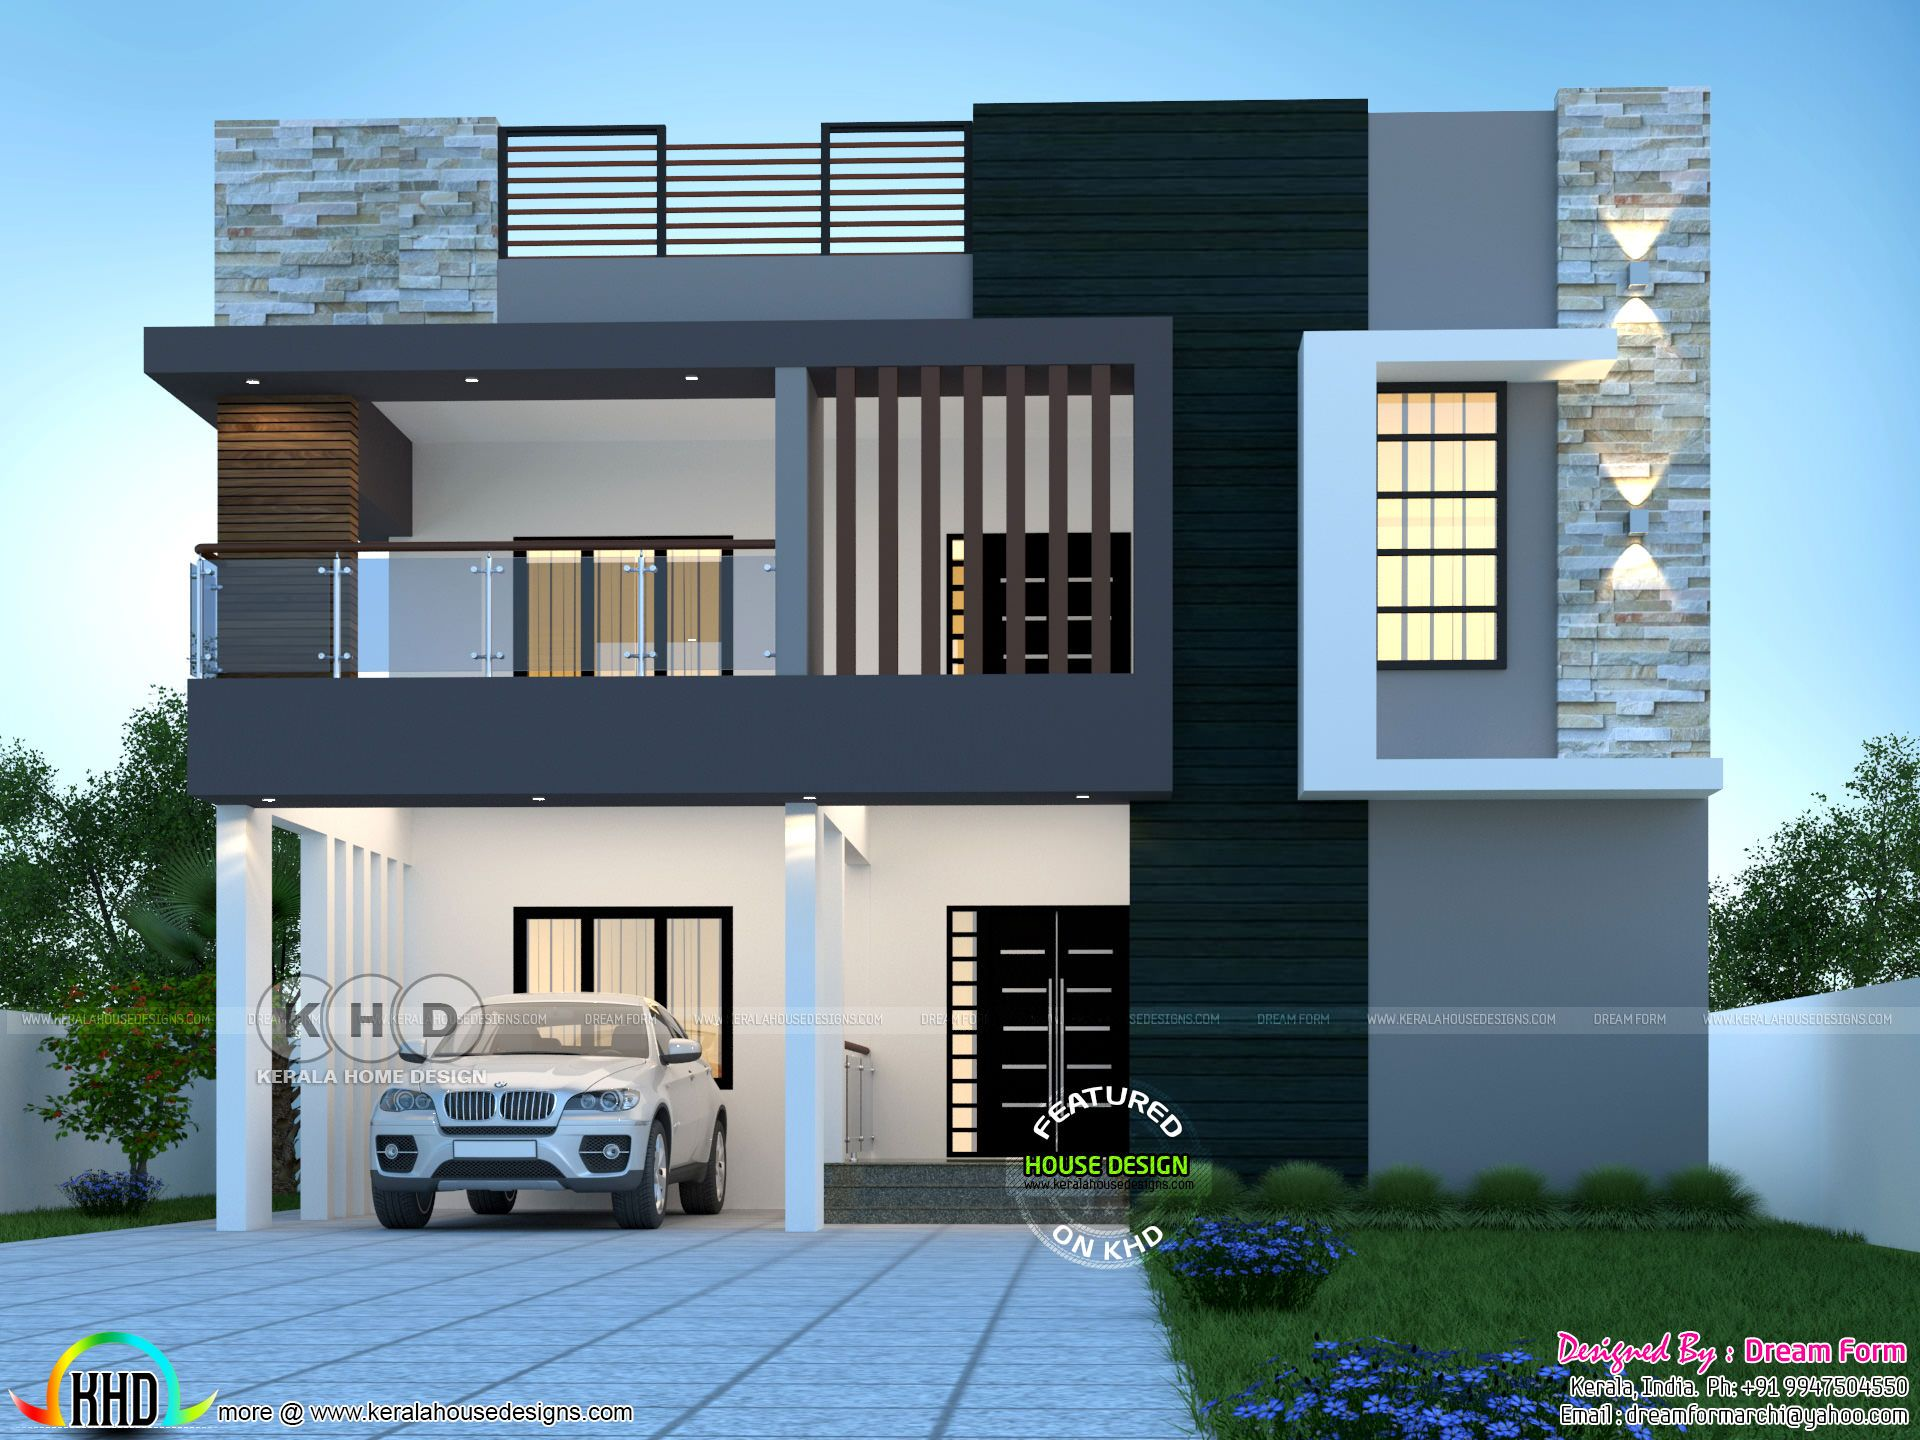 6 Bedrooms 3840 Sq Ft Duplex Modern Home Design Kerala House Design Small House Design Exterior Bungalow House Design